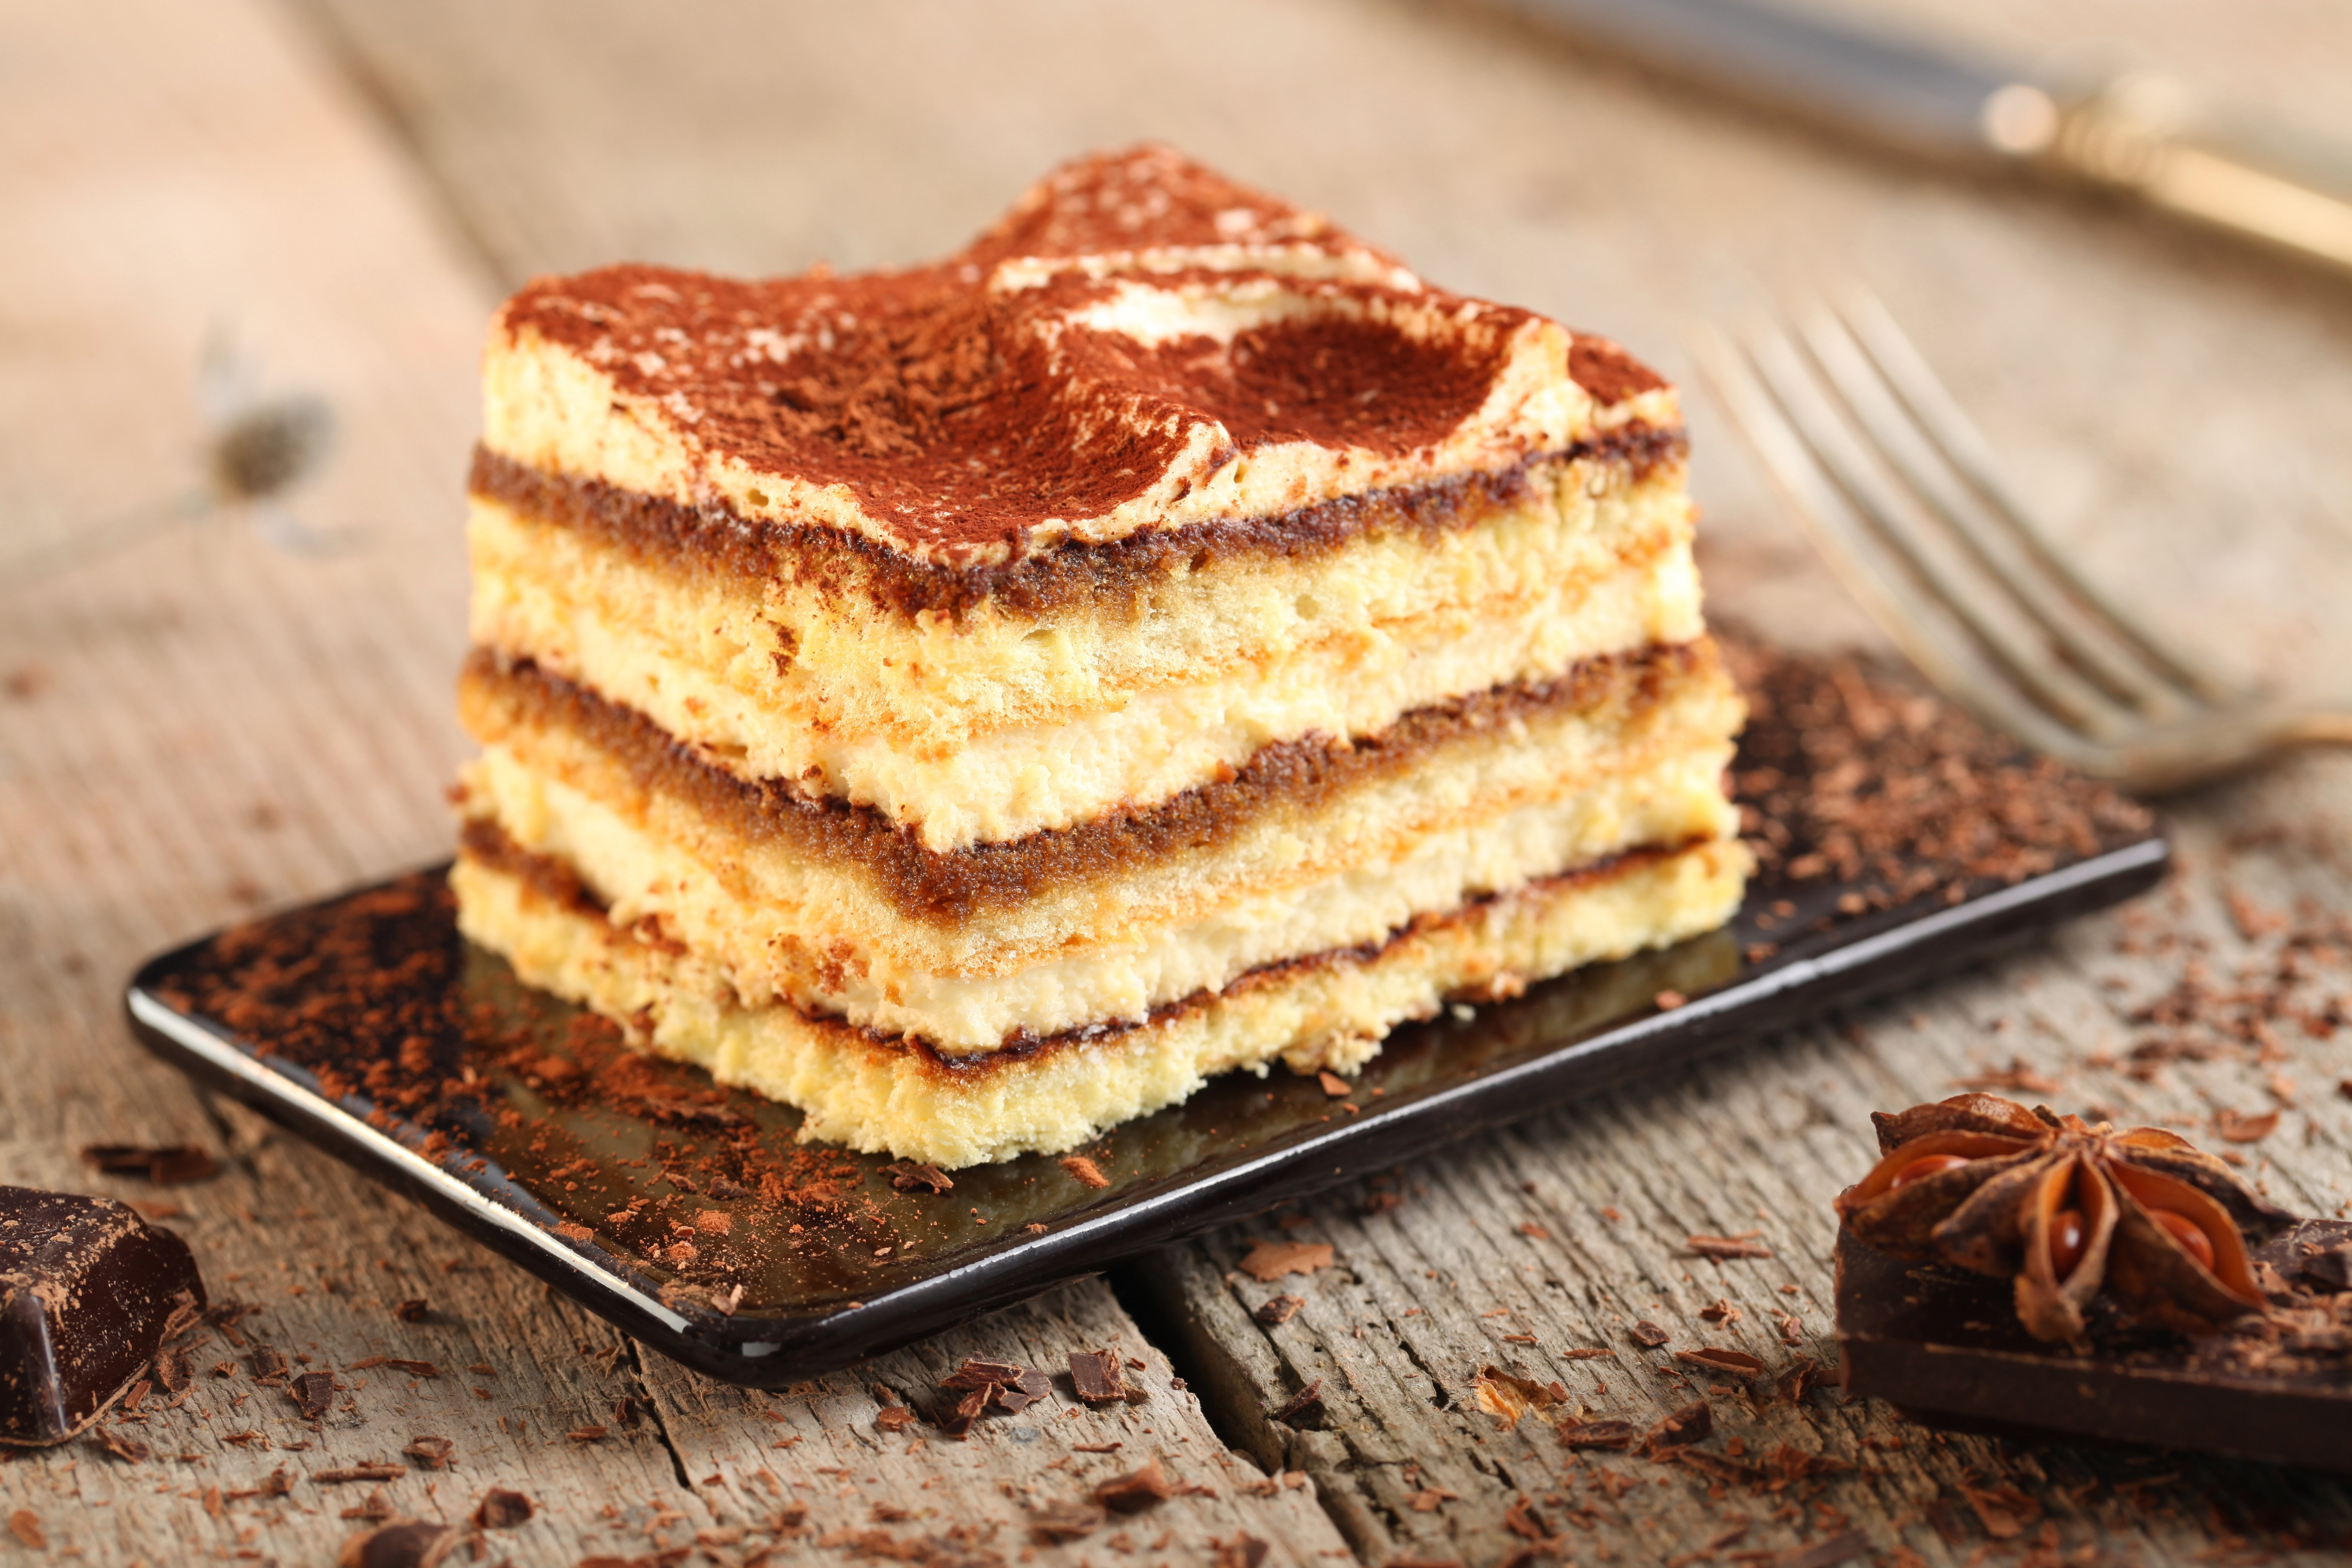 Permalink to Chocolate Biscuit Cake